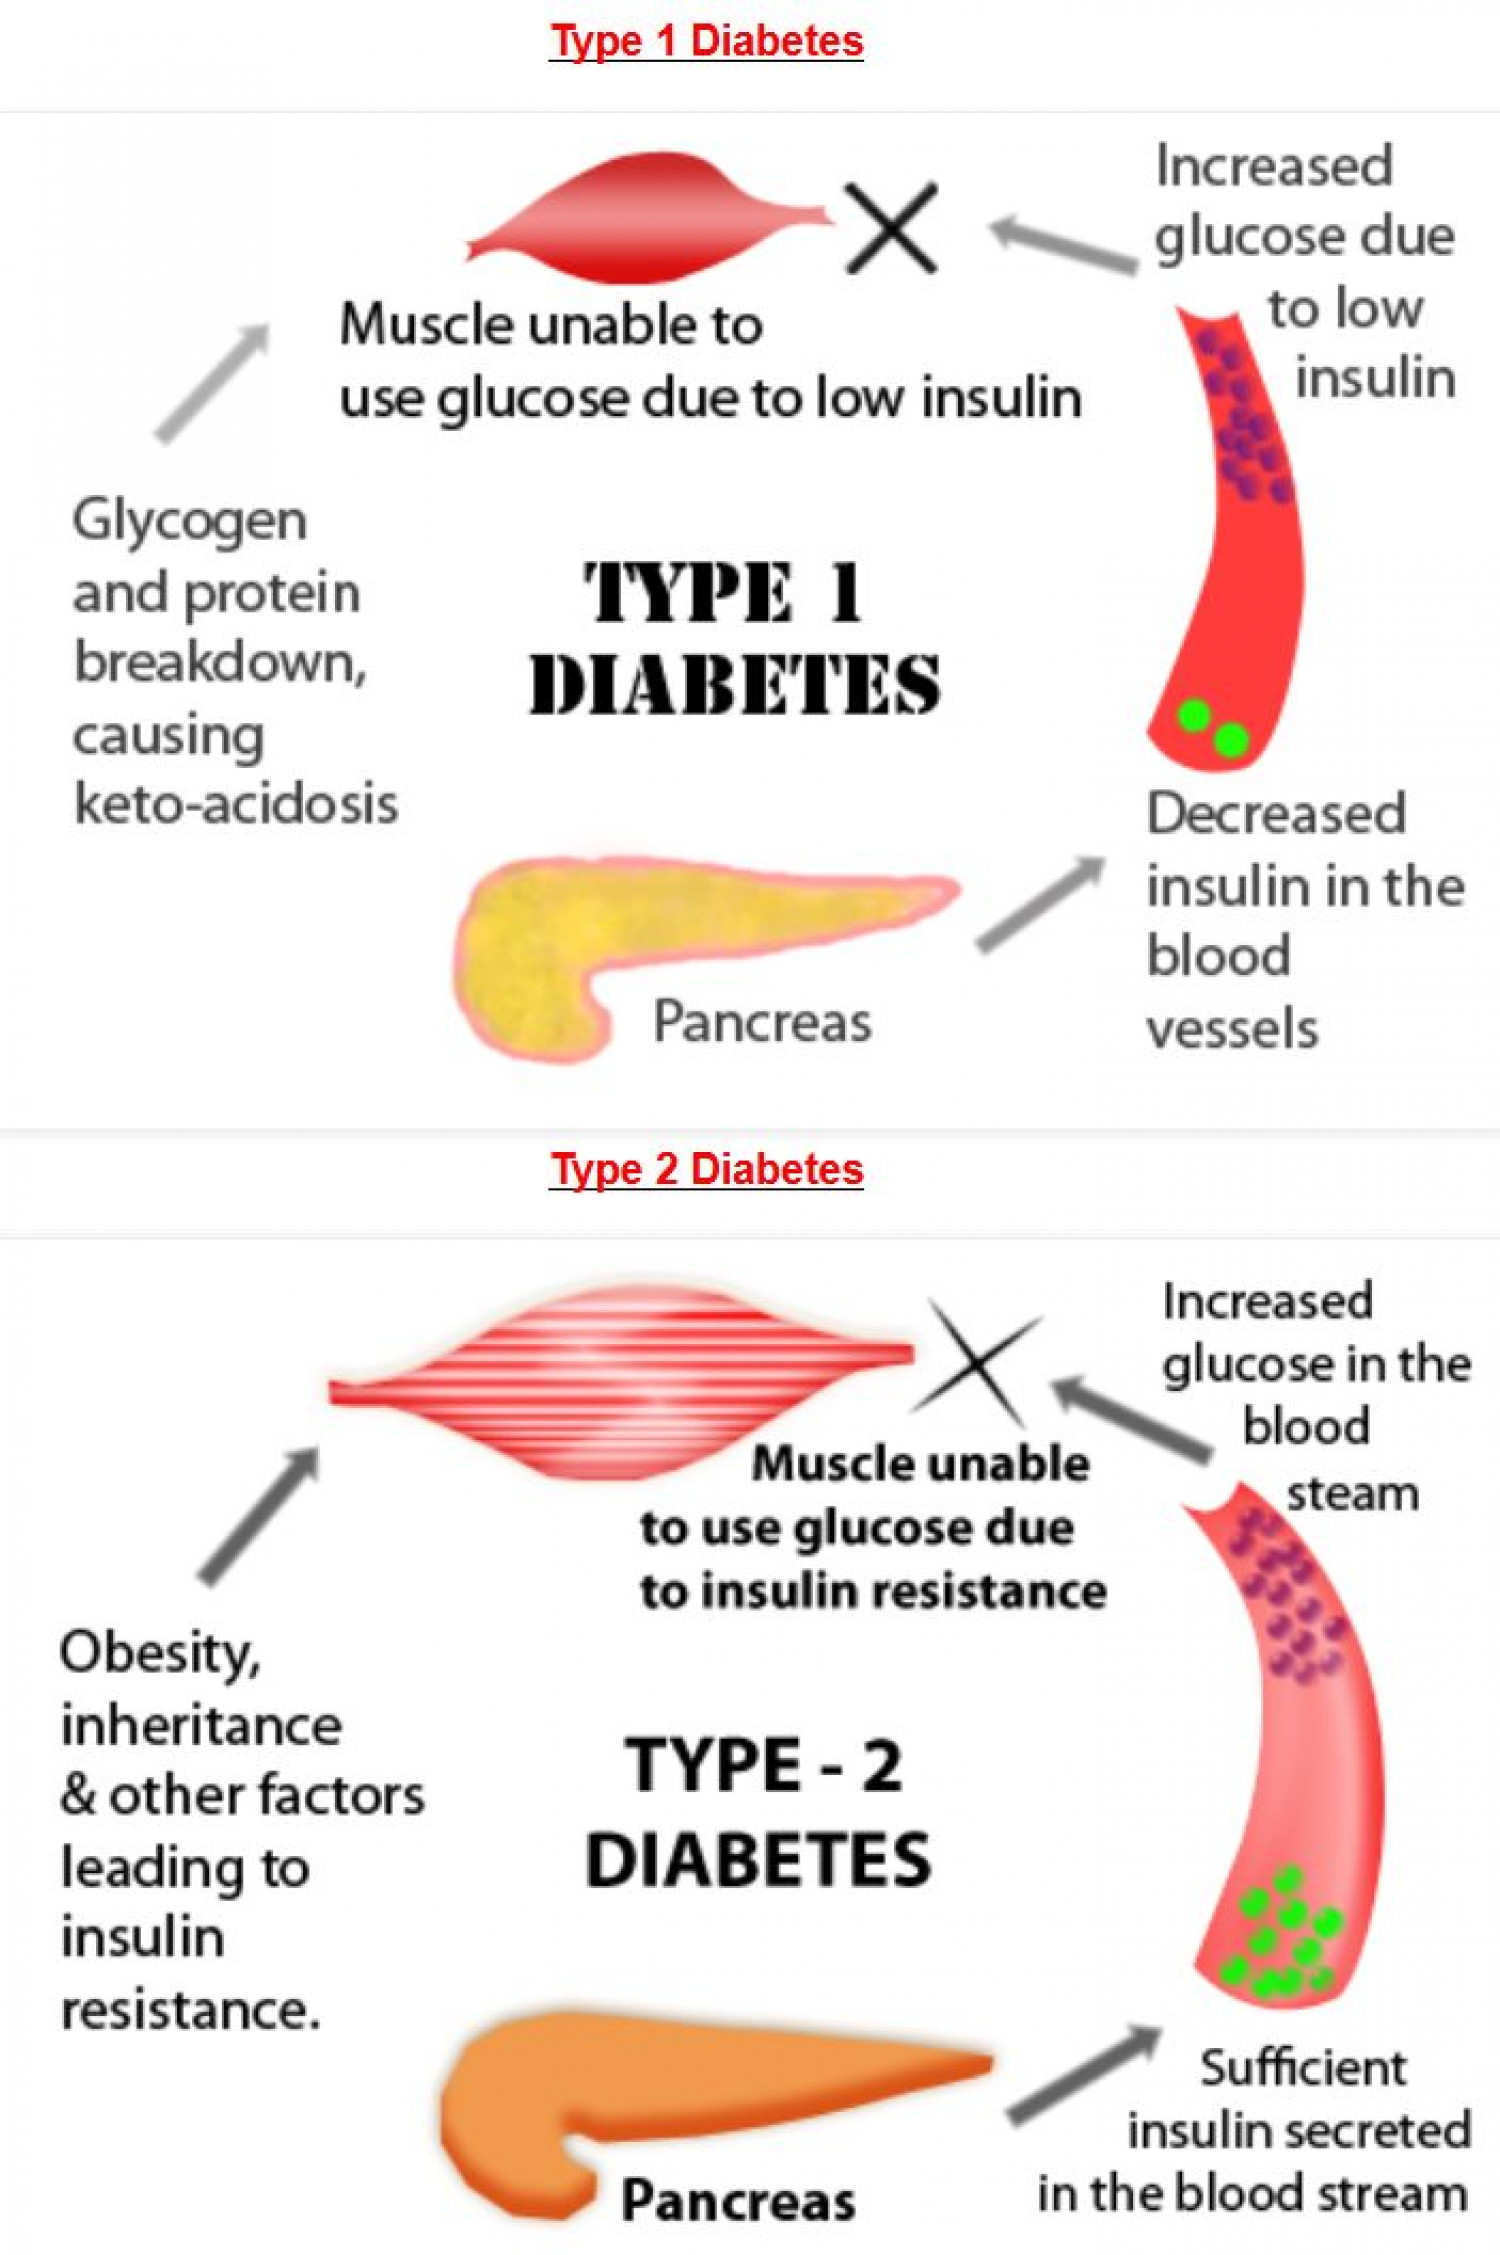 diabetes type diabetes v s type diabetes ly diabetes type 1 diabetes v s type 2 diabetes infographic